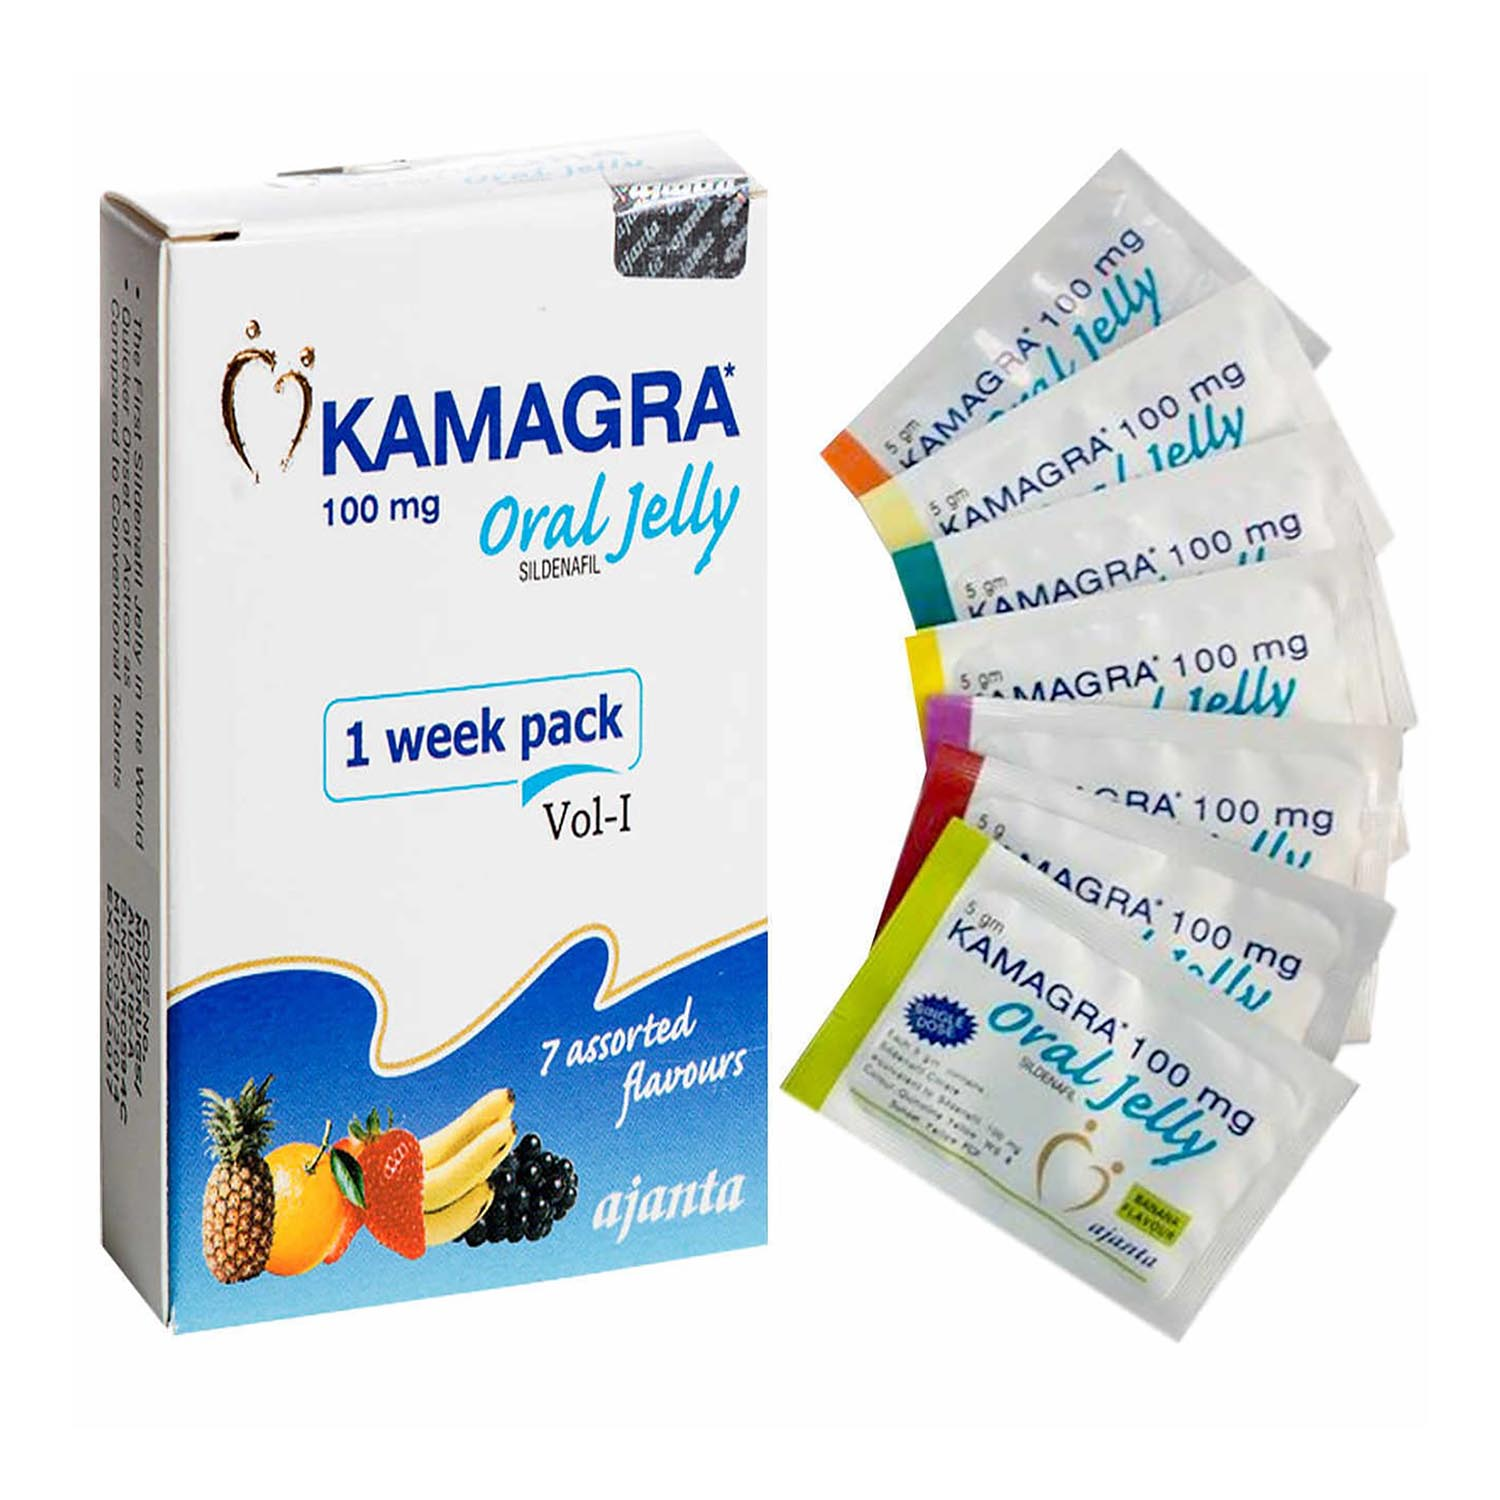 Sildenafil Citrate Oral Jelly